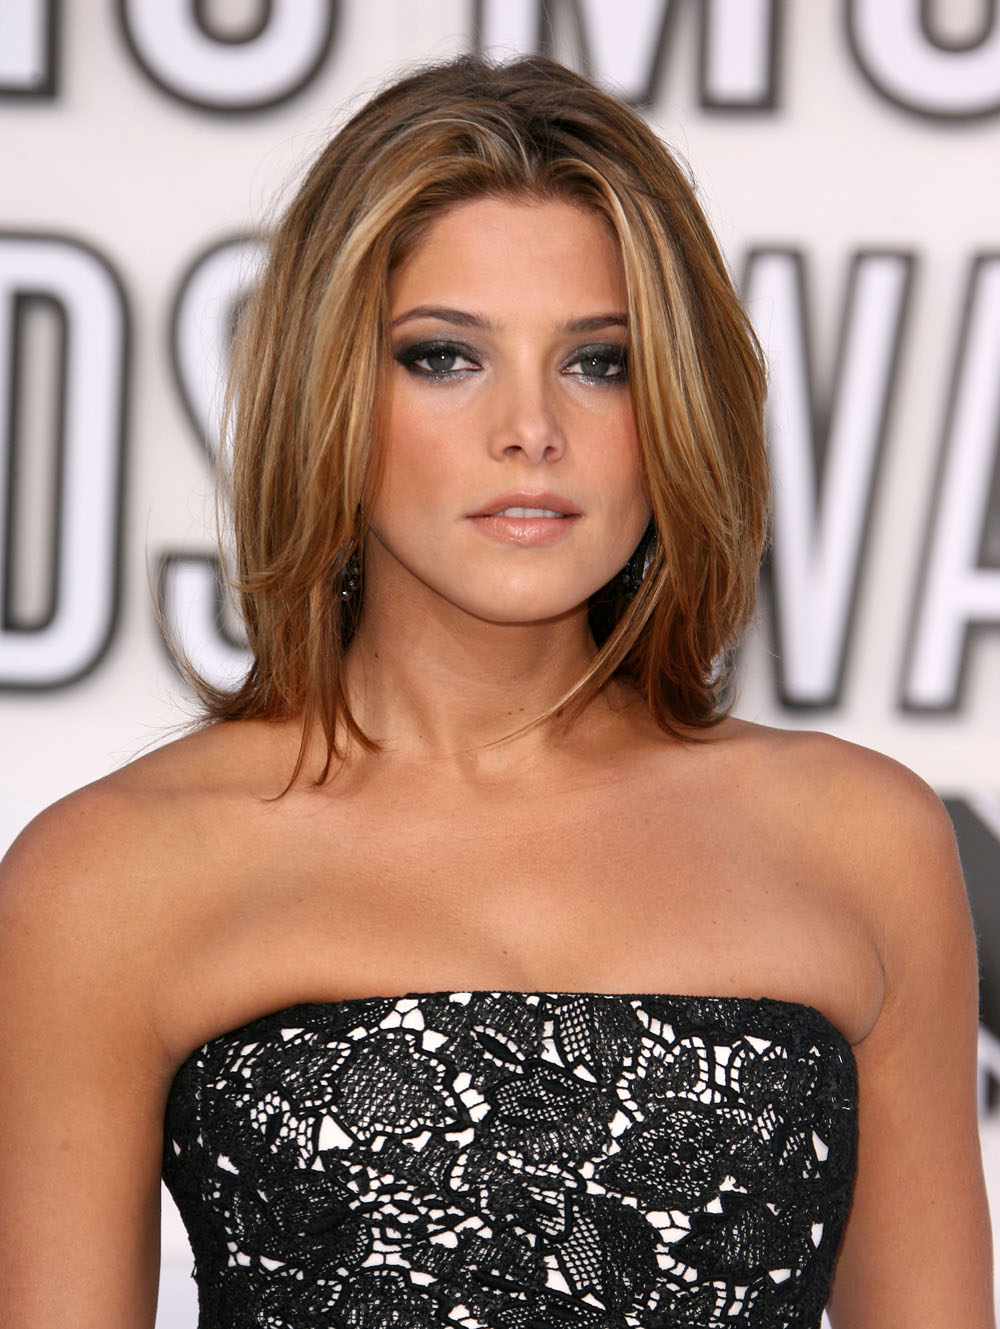 #5716528 The Video Music Awards 2010 Arrivals held at The Nokia Theatre LA Live in Los Angeles, California in September 12th, 2010.<br/><br />Ashley Greene<br/><br /><br/><br /><br/><br /><br/><br /><br/><br /><br/><br /><br/><br /><br/><br /><br/><br /><br/><br /><br/><br /><br/><br /><br/><br /><br/><br /><br/><br /><br/><br /><br/><br /><br/><br /><br/><br /><br/><br /><br/><br /><br/><br /><br/><br /><br/><br /><br/><br /><br/><br /><br/><br /><br/><br /><br/><br /><br/><br /> Fame Pictures, Inc - Santa Monica, CA, USA -  1